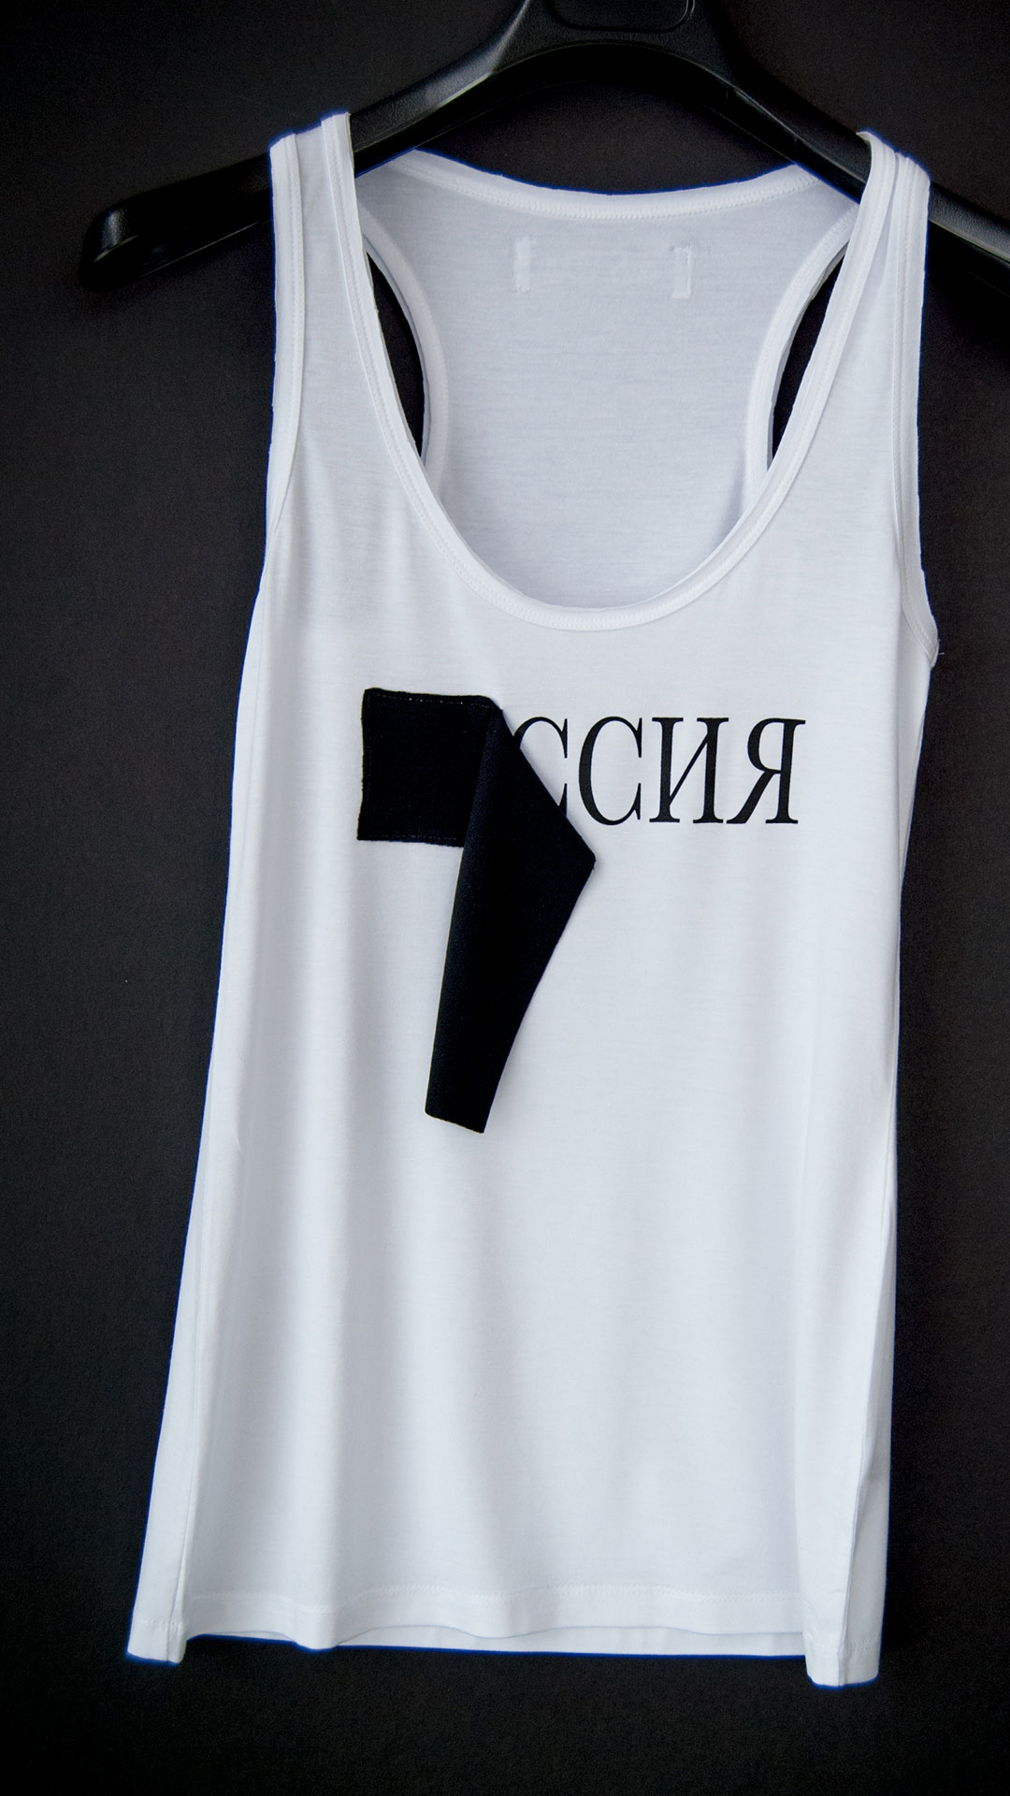 White Russia tank top